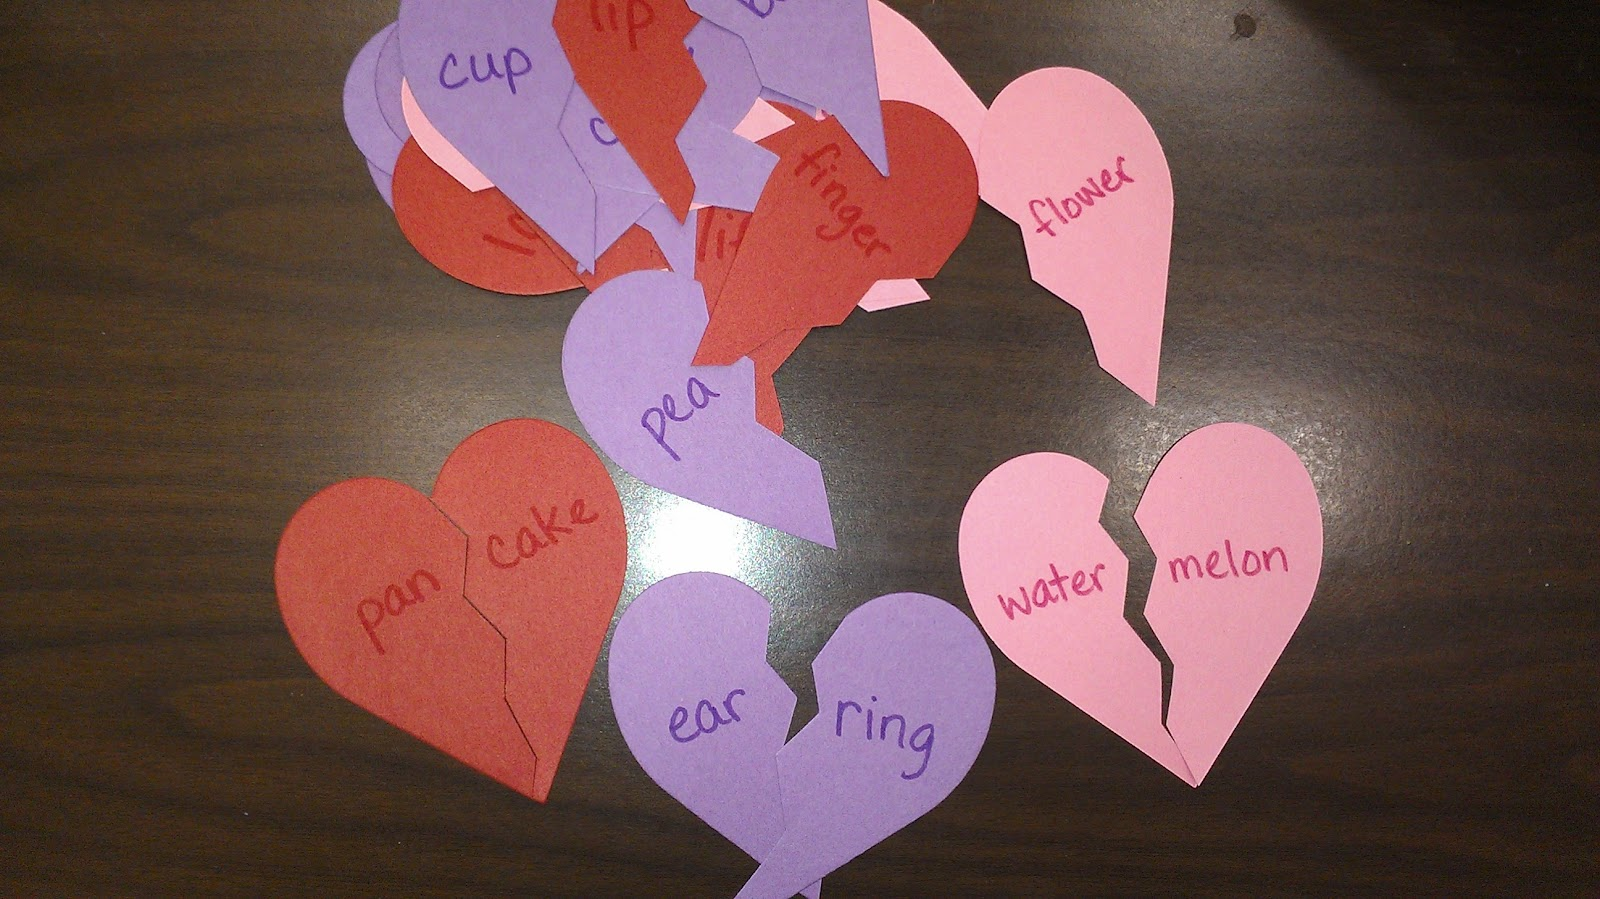 Apples to Applique: Compound Word Hearts